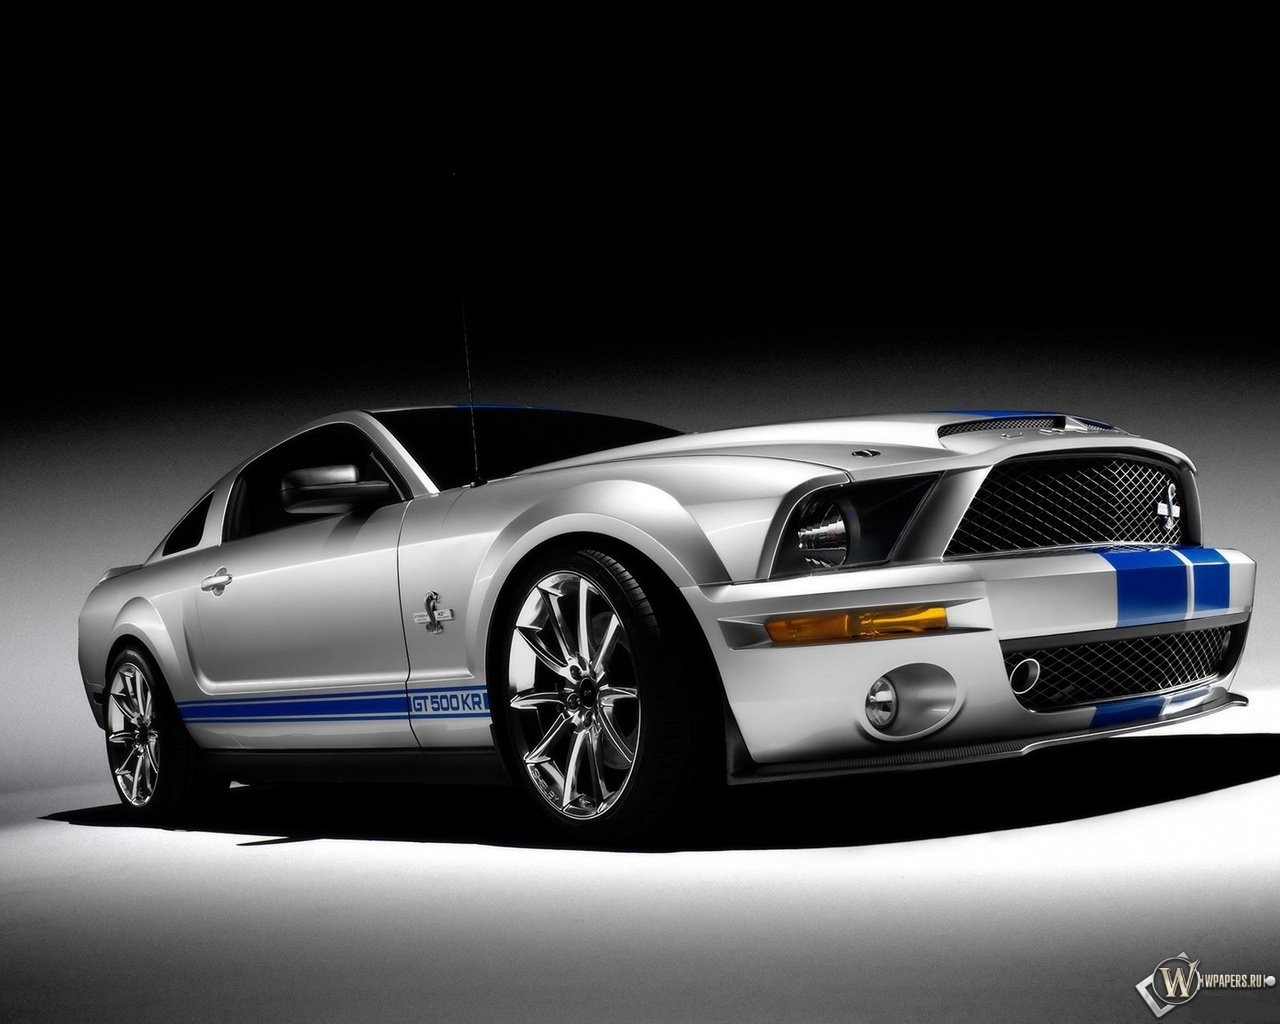 2019 Ford Mustang Shelby GT500 Convertible photo - 2